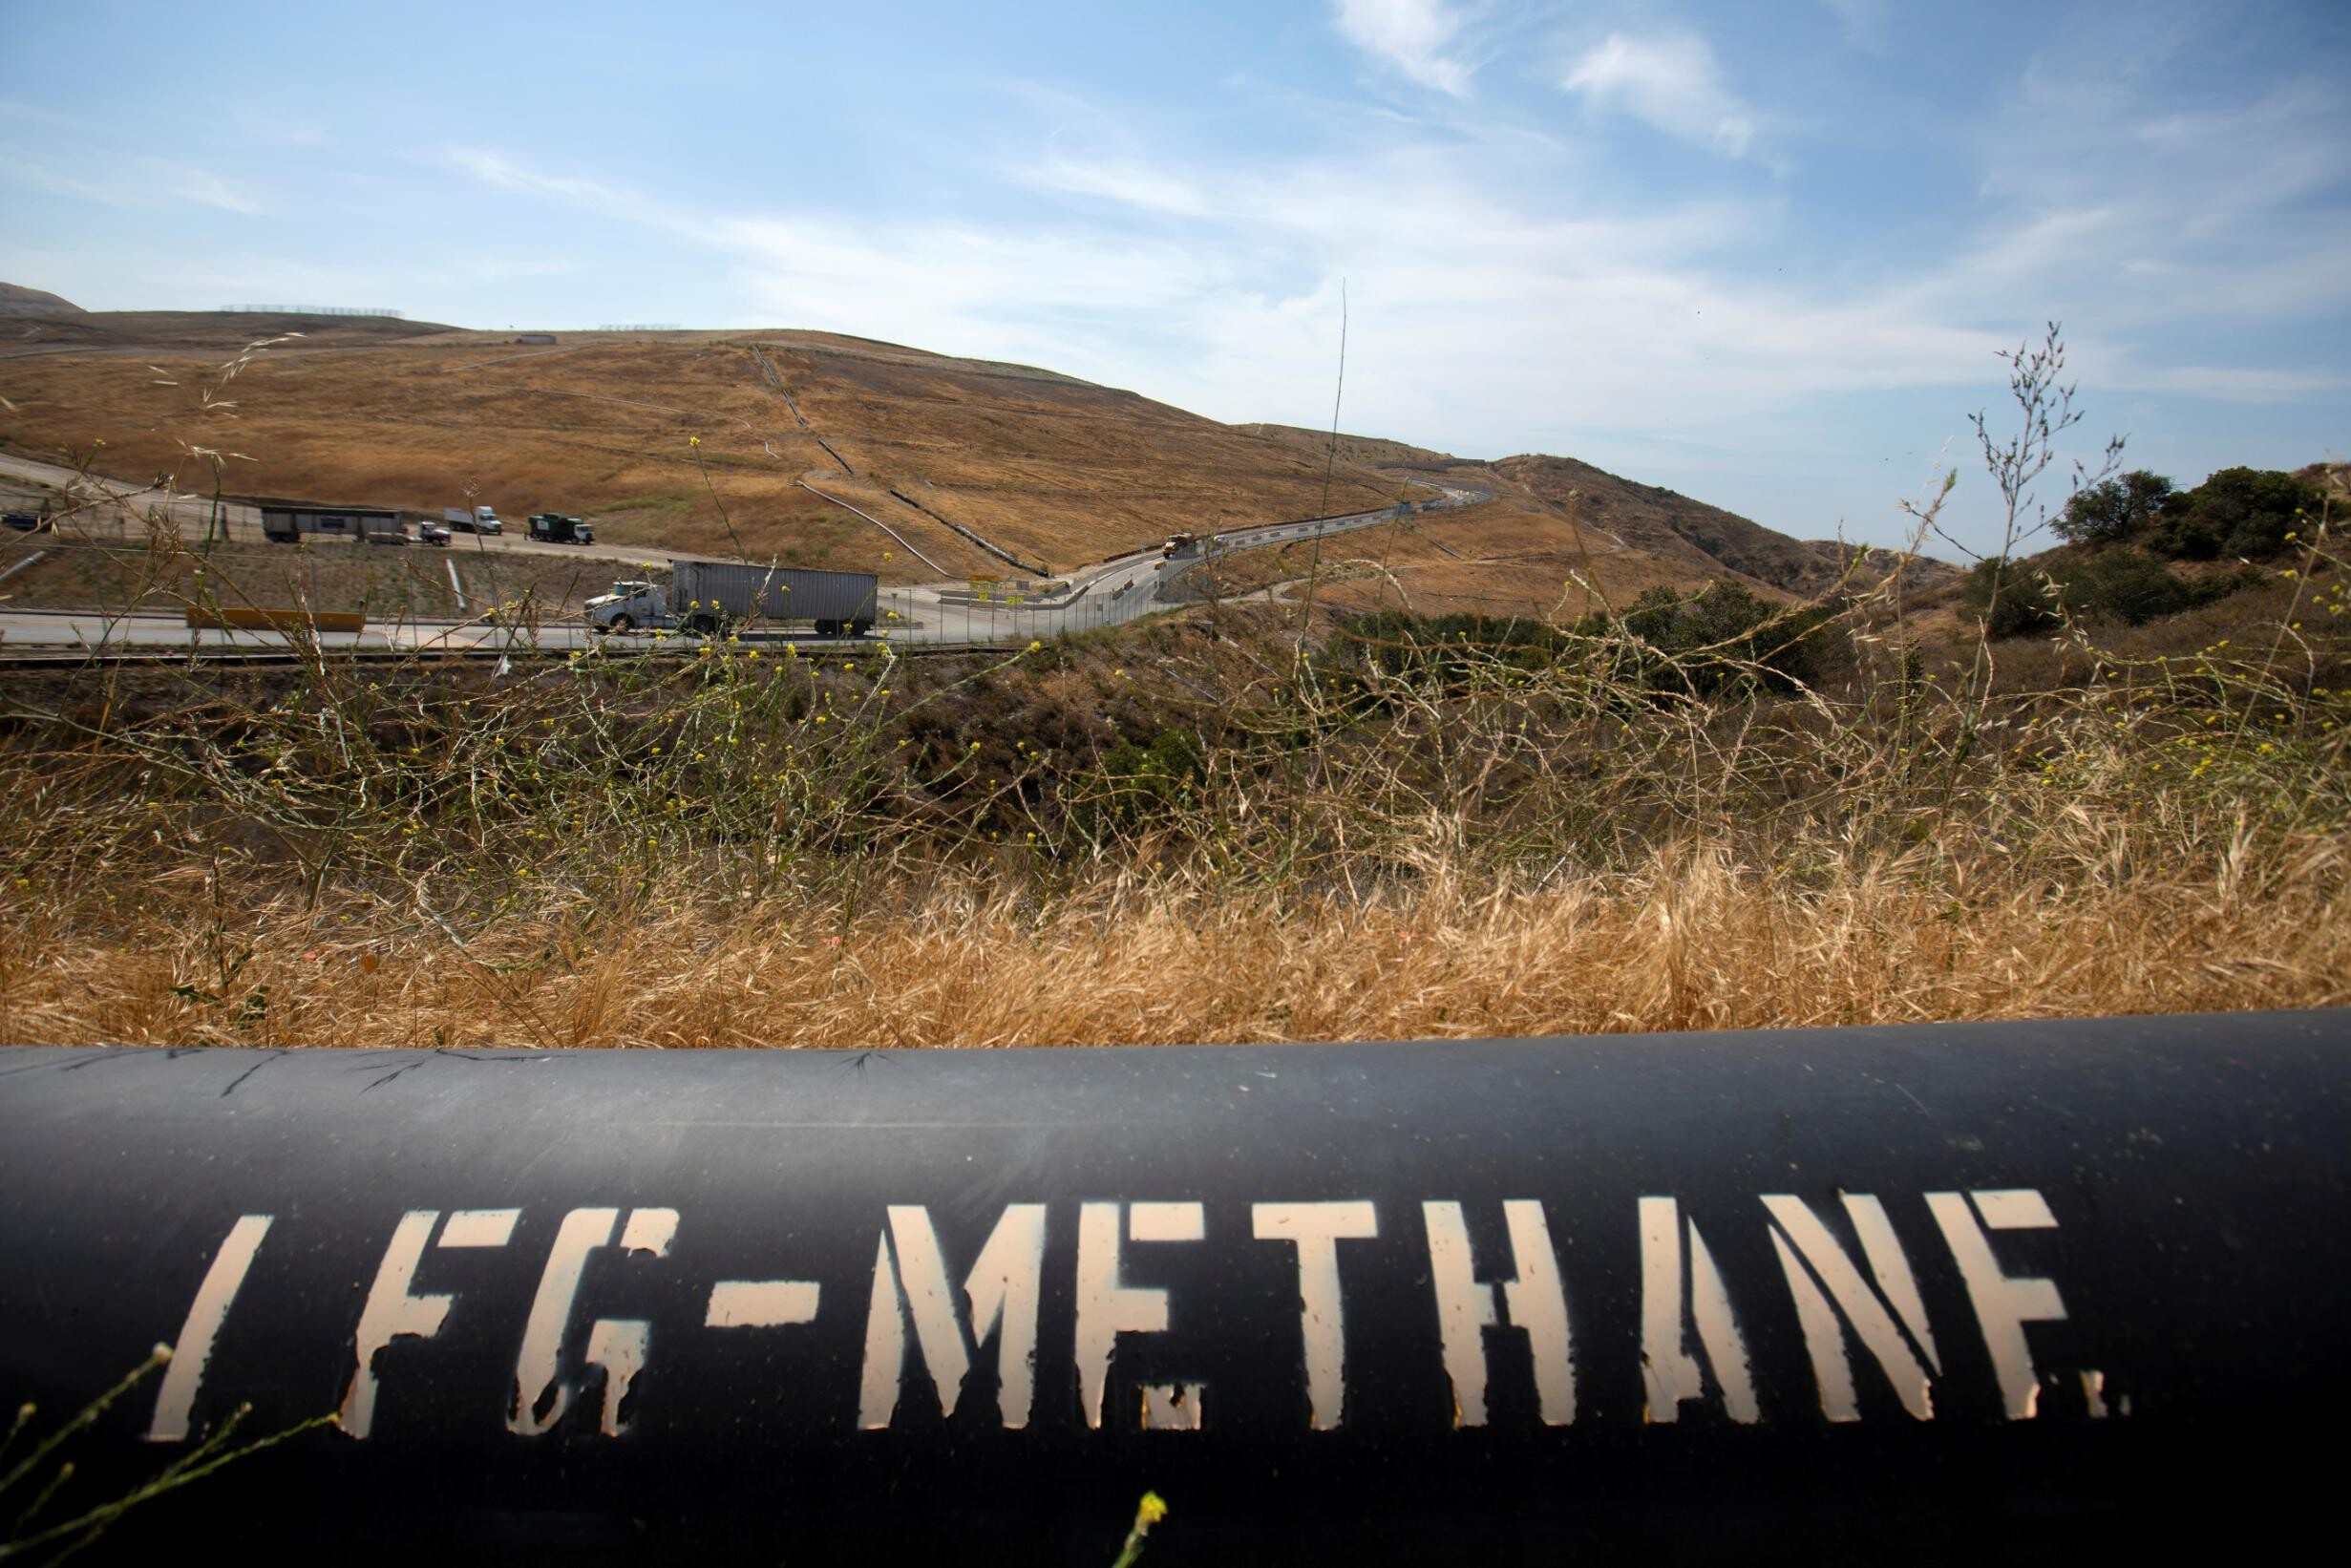 <i>Mike Blake/Reuters</i><br/>The United States and European Union will announce on Friday a global pledge to reduce emissions of methane. Pictured is a pipeline that moves methane gas from the Frank R. Bowerman landfill to a power plant in Irvine